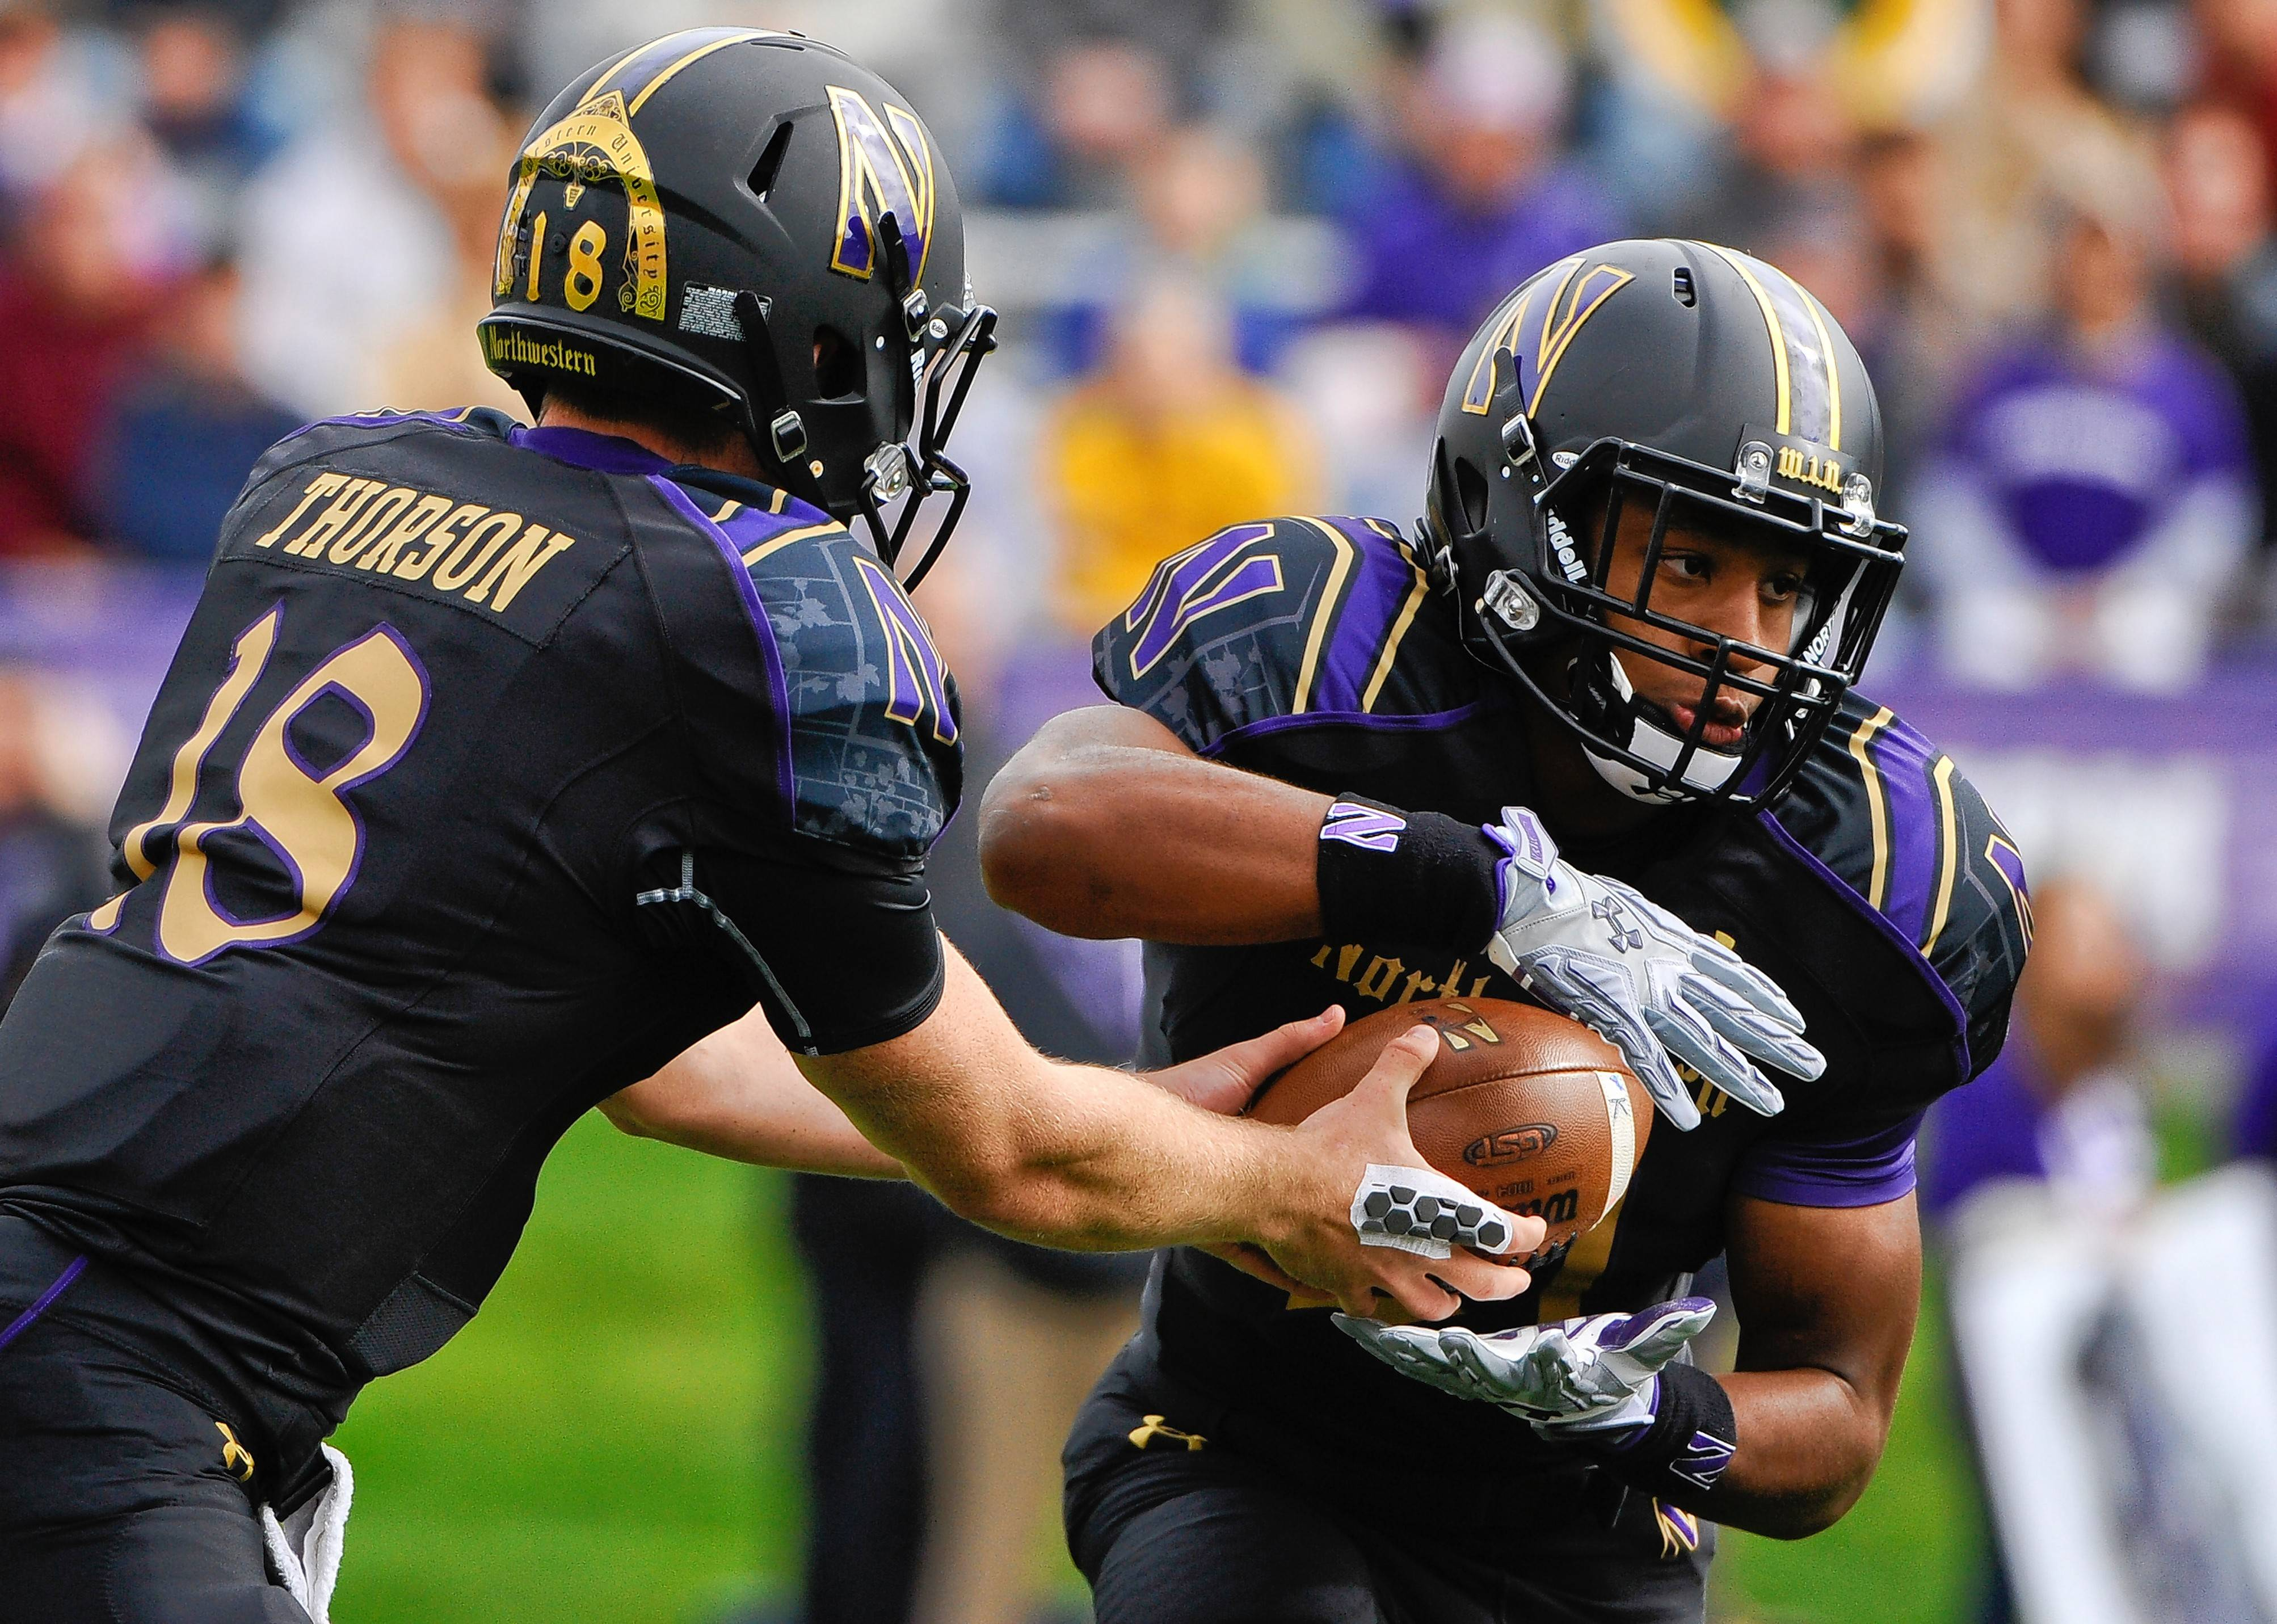 Northwestern football will lean on DuPage County connection